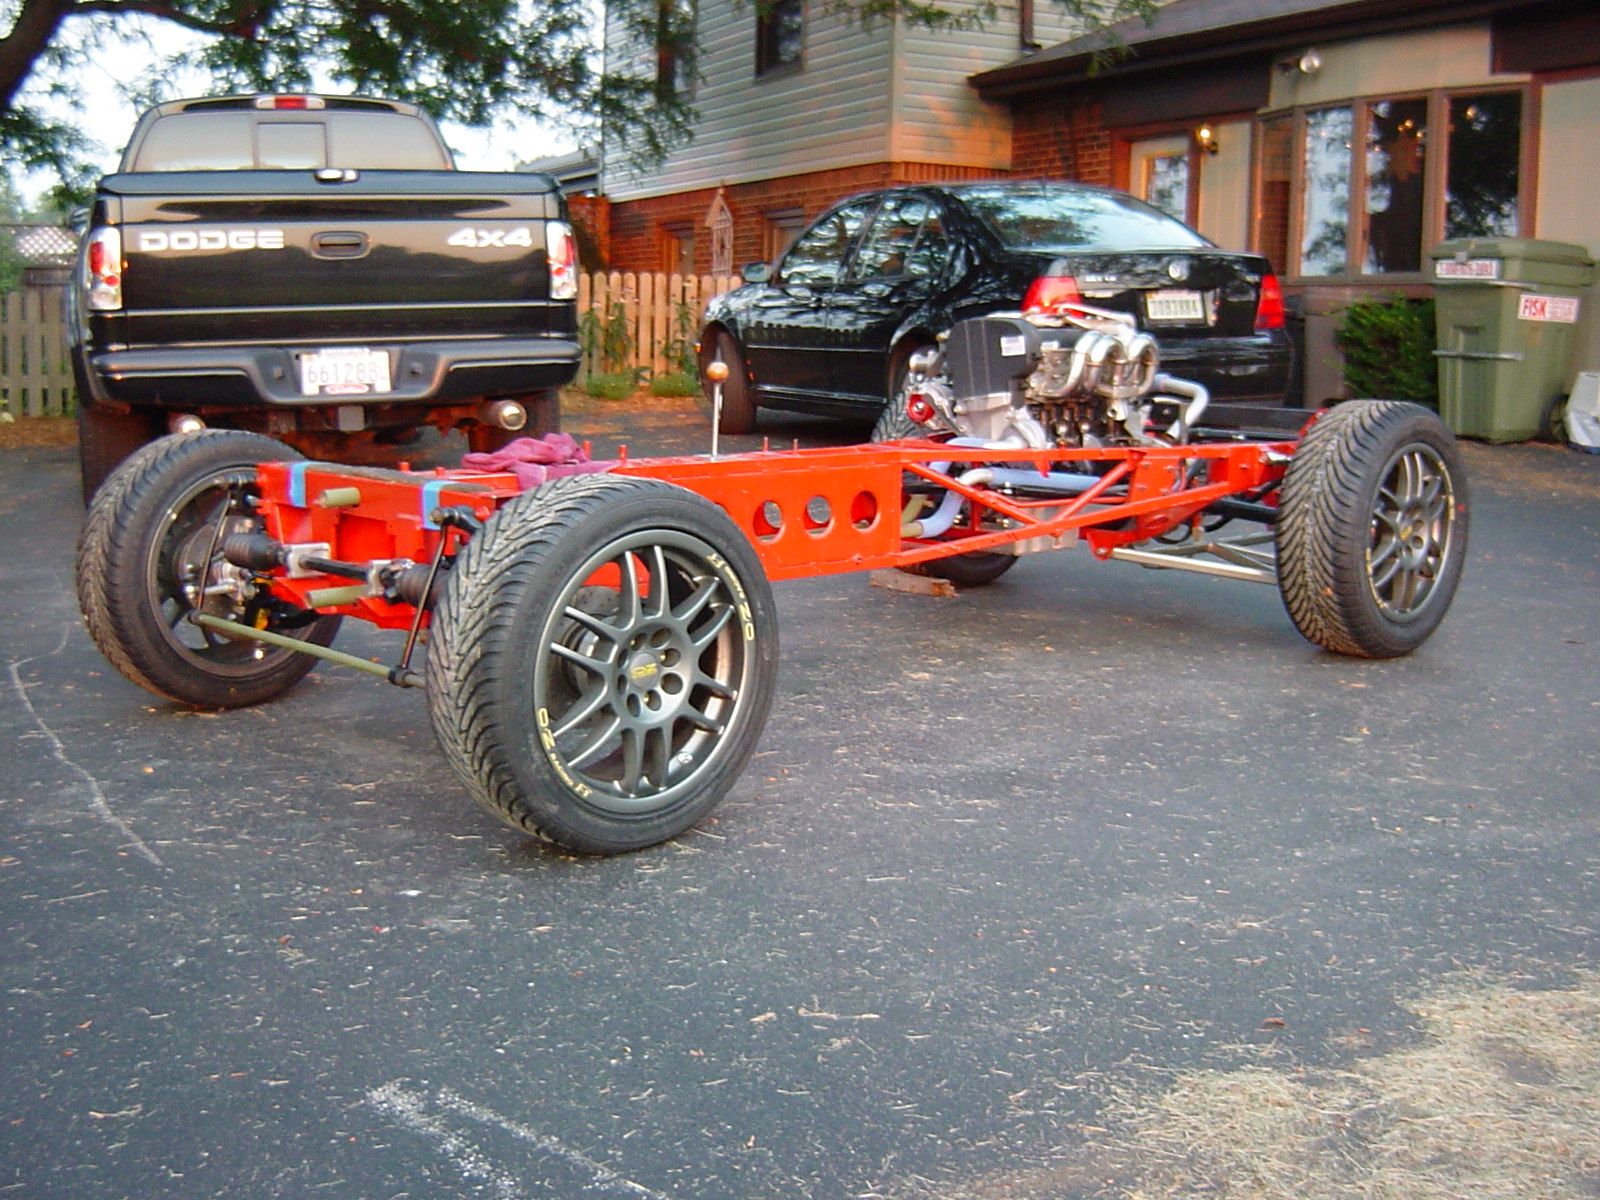 """16"""" OZ F-1 Cup wheels, Might work... a bit large in front but perfect for rear with flairs."""